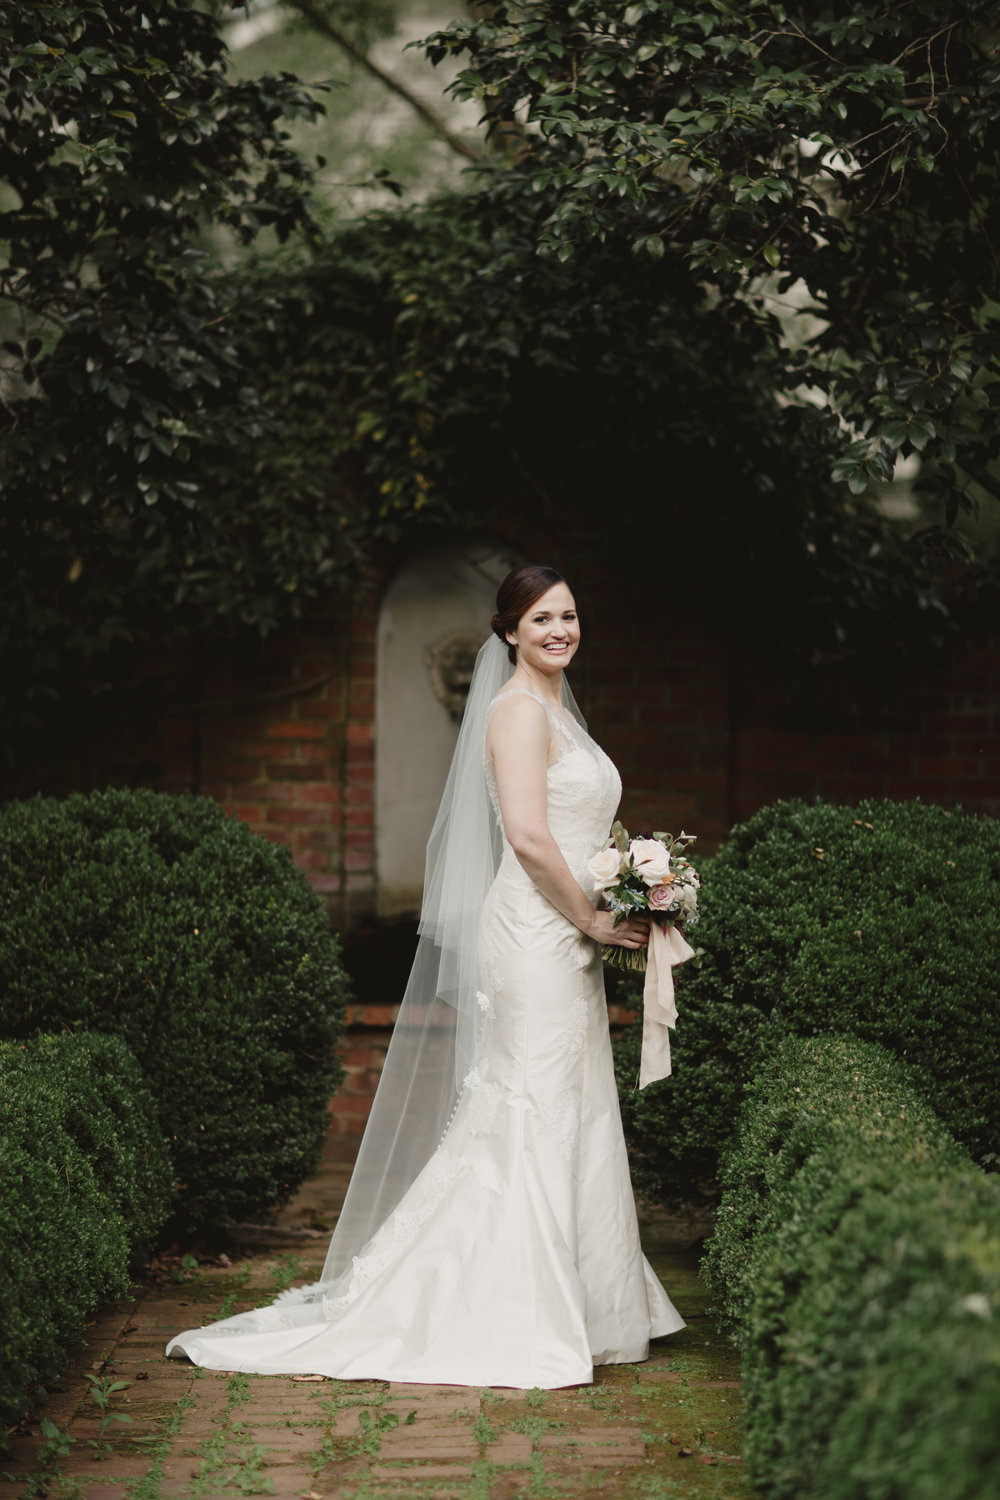 AliceBridals - Alicia White Photography-106.jpg